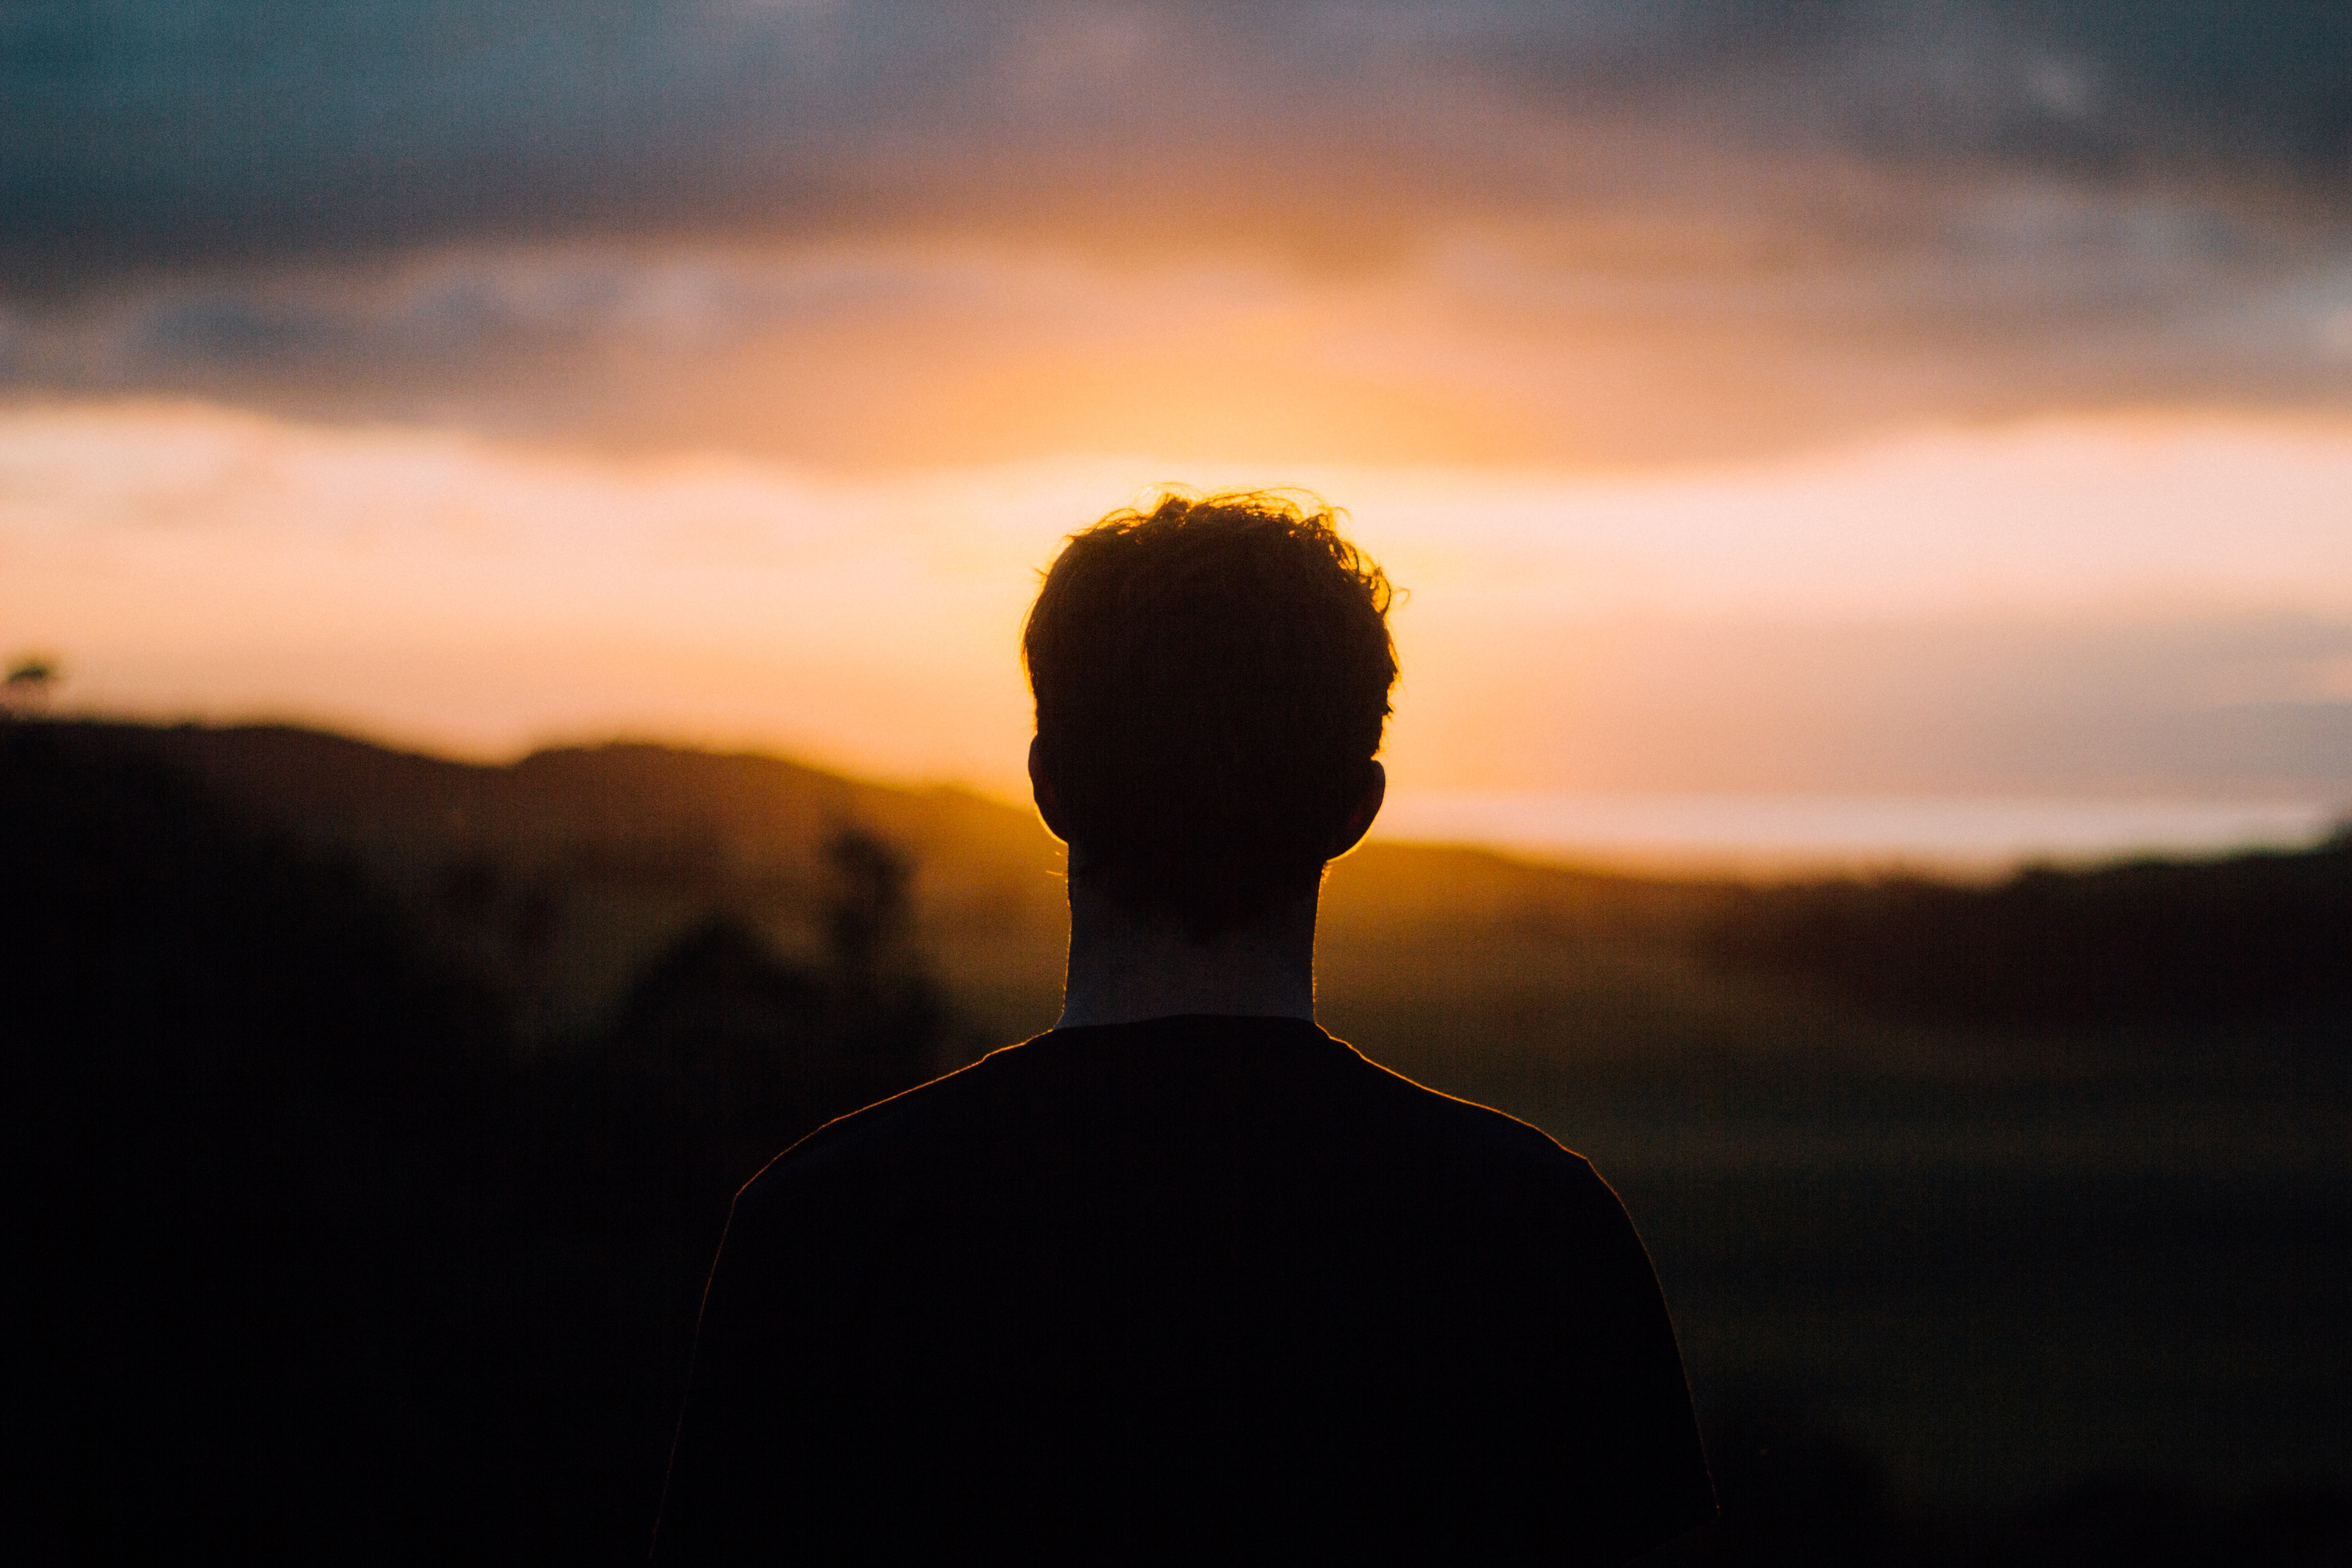 Silhouette of the back of a man's head, looking at the sun in a cloudy, orange sky